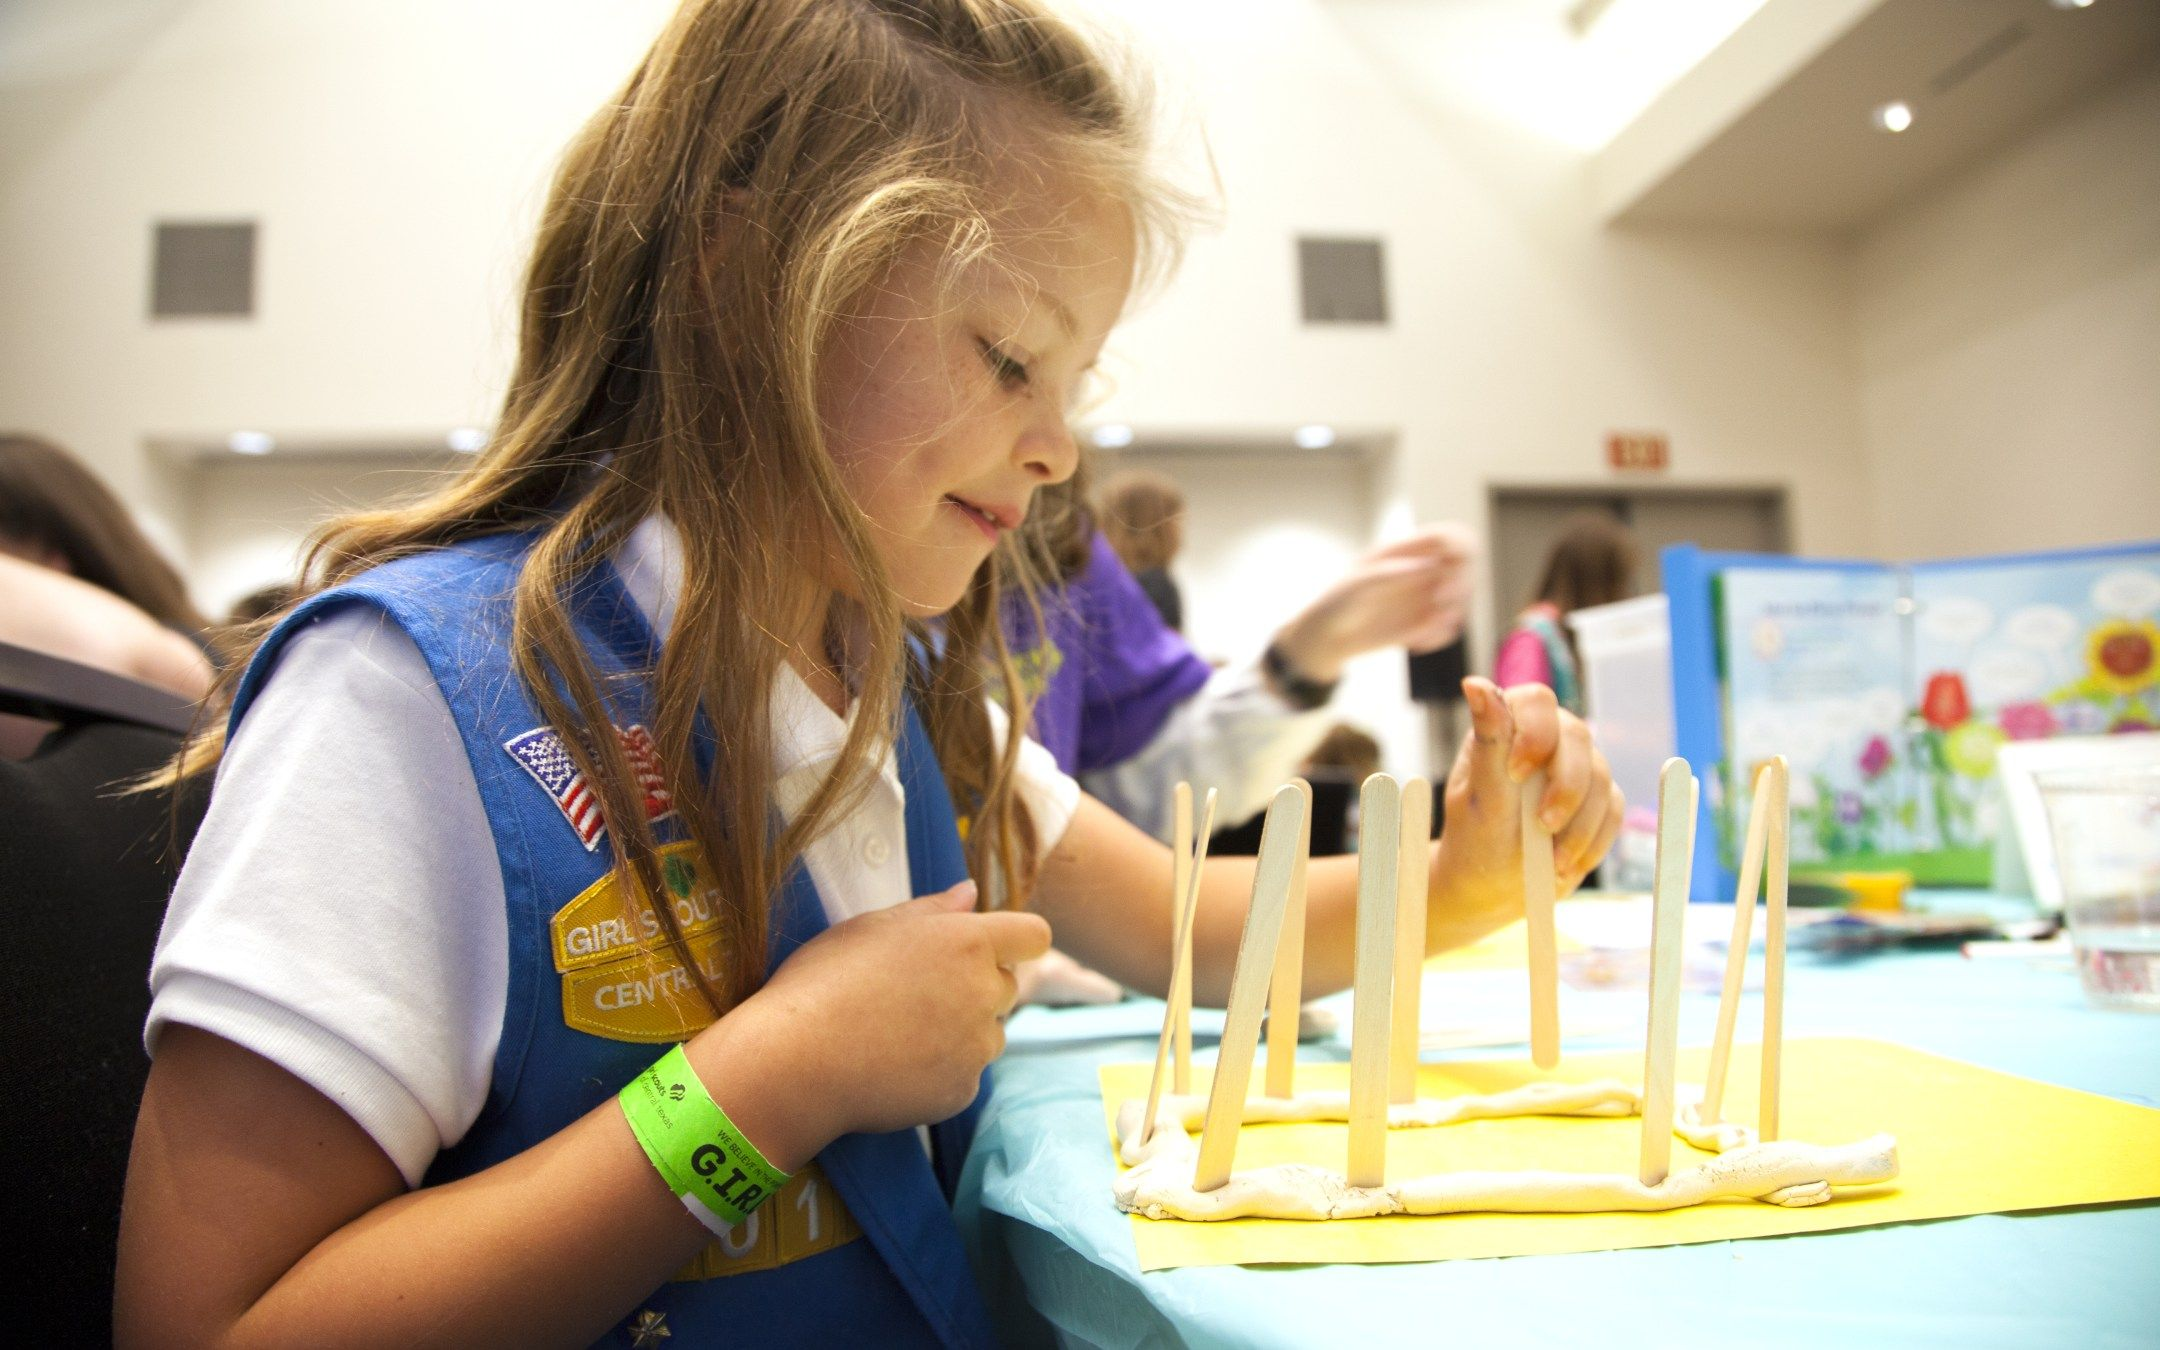 Out Of The Box Badge Activities For Creative Girl Scouts